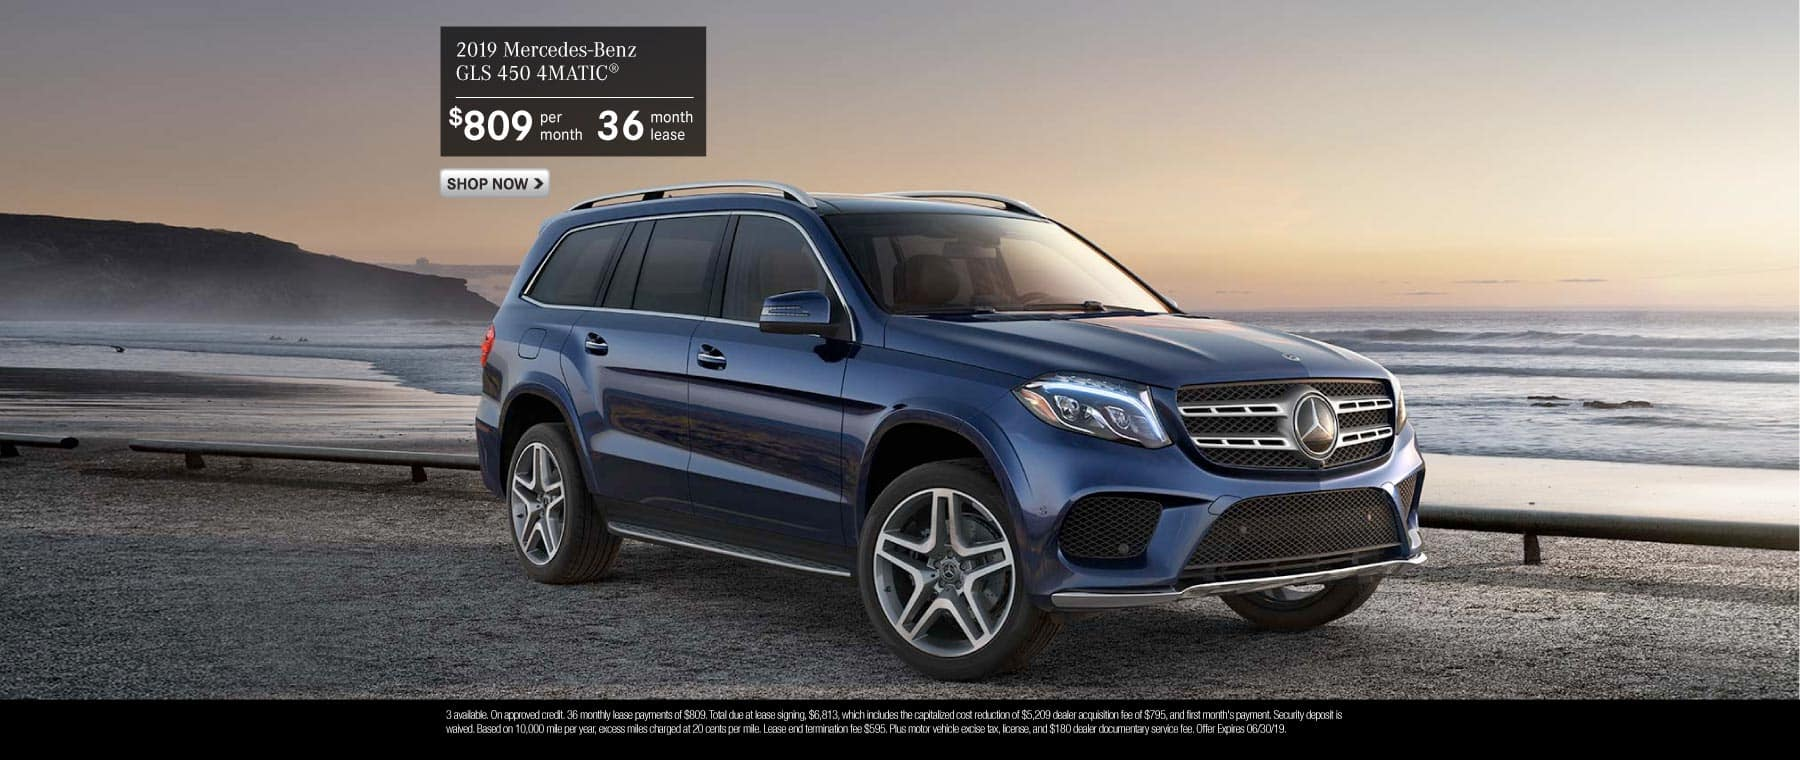 2019 Mercedes-Benz GLS 450 4MATIC